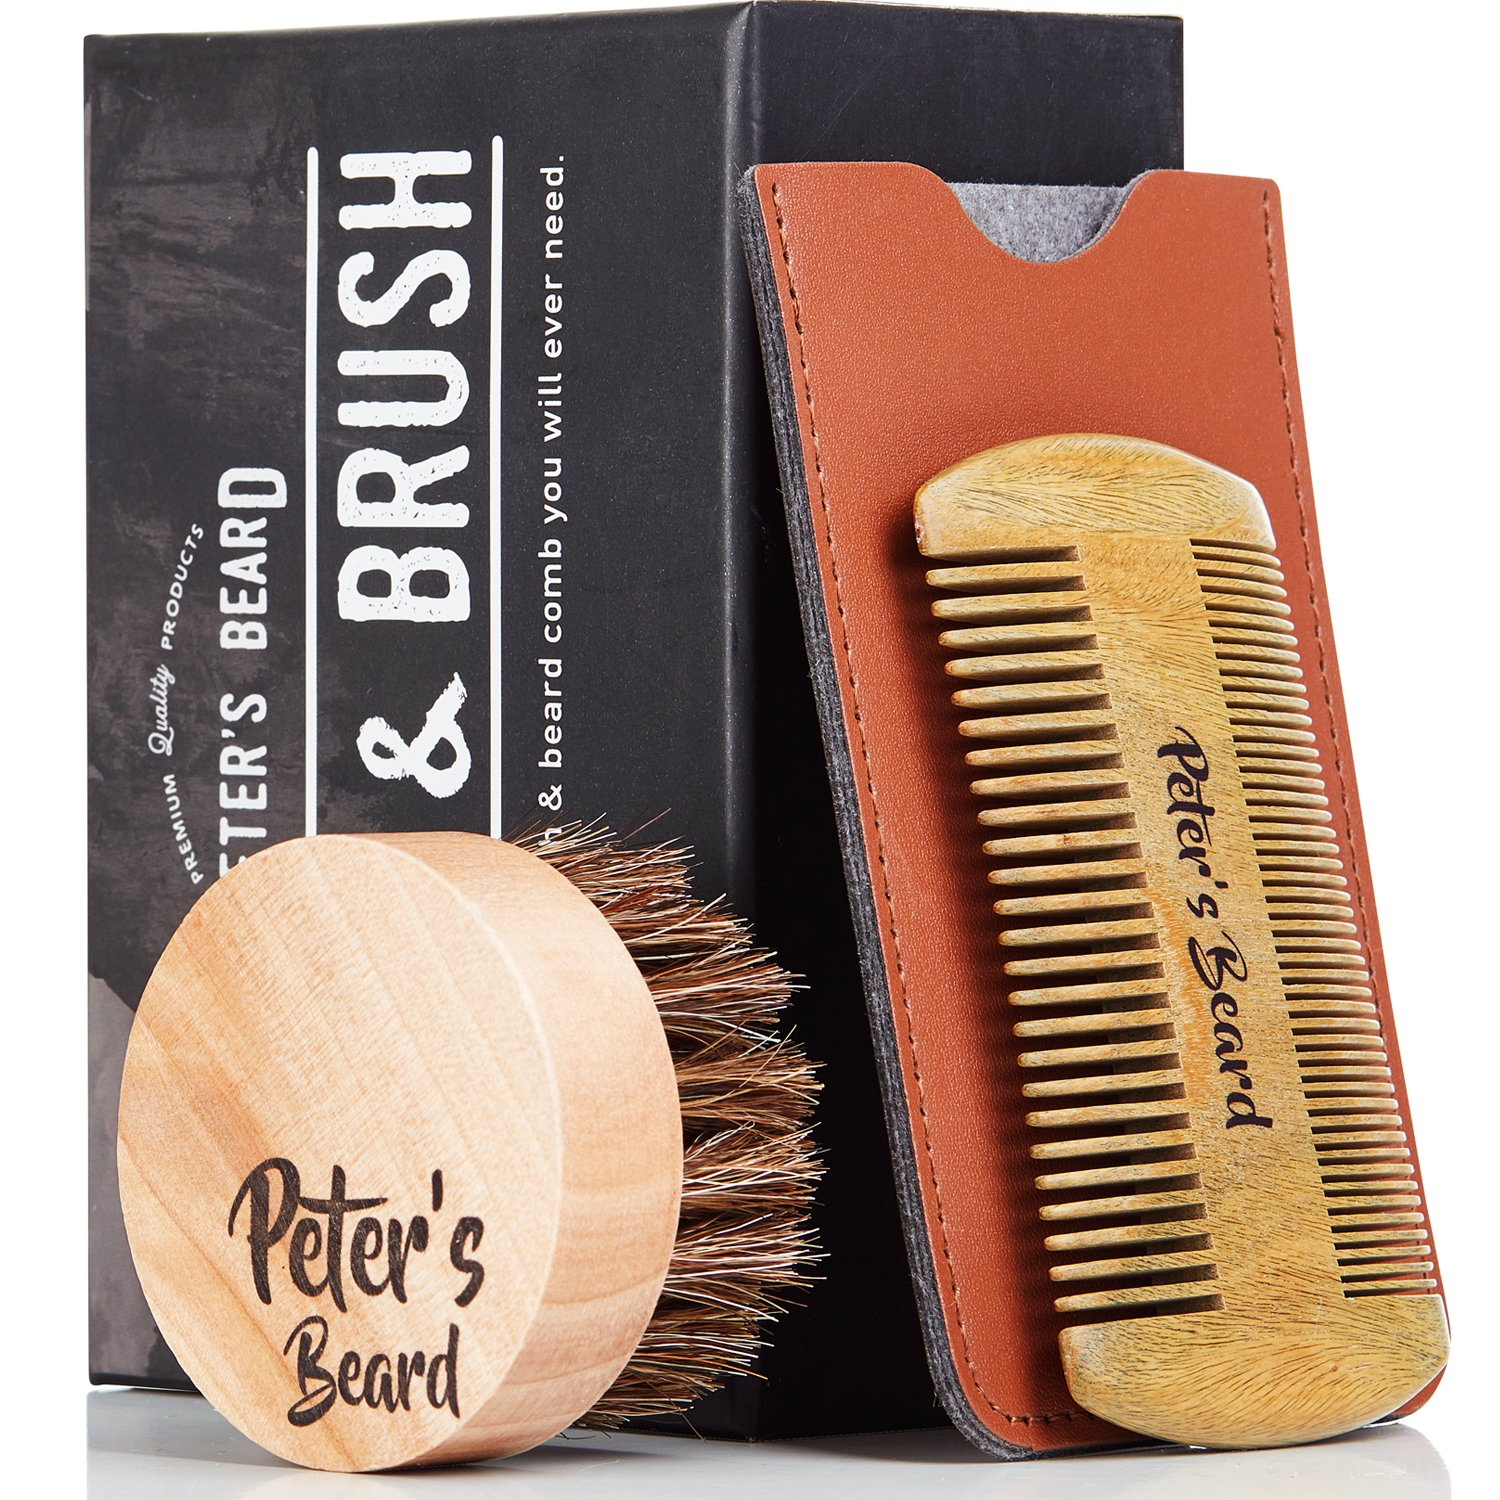 Beard Comb and Brush Set for Men - Wooden Beard Comb Sandalwood Beard Comb - Natural Horse Hair Bristle Brush - Perfect for Beard Balms & Oils – Soften and Condition Itchy Beards - 2 Year Warranty Peter's Beard